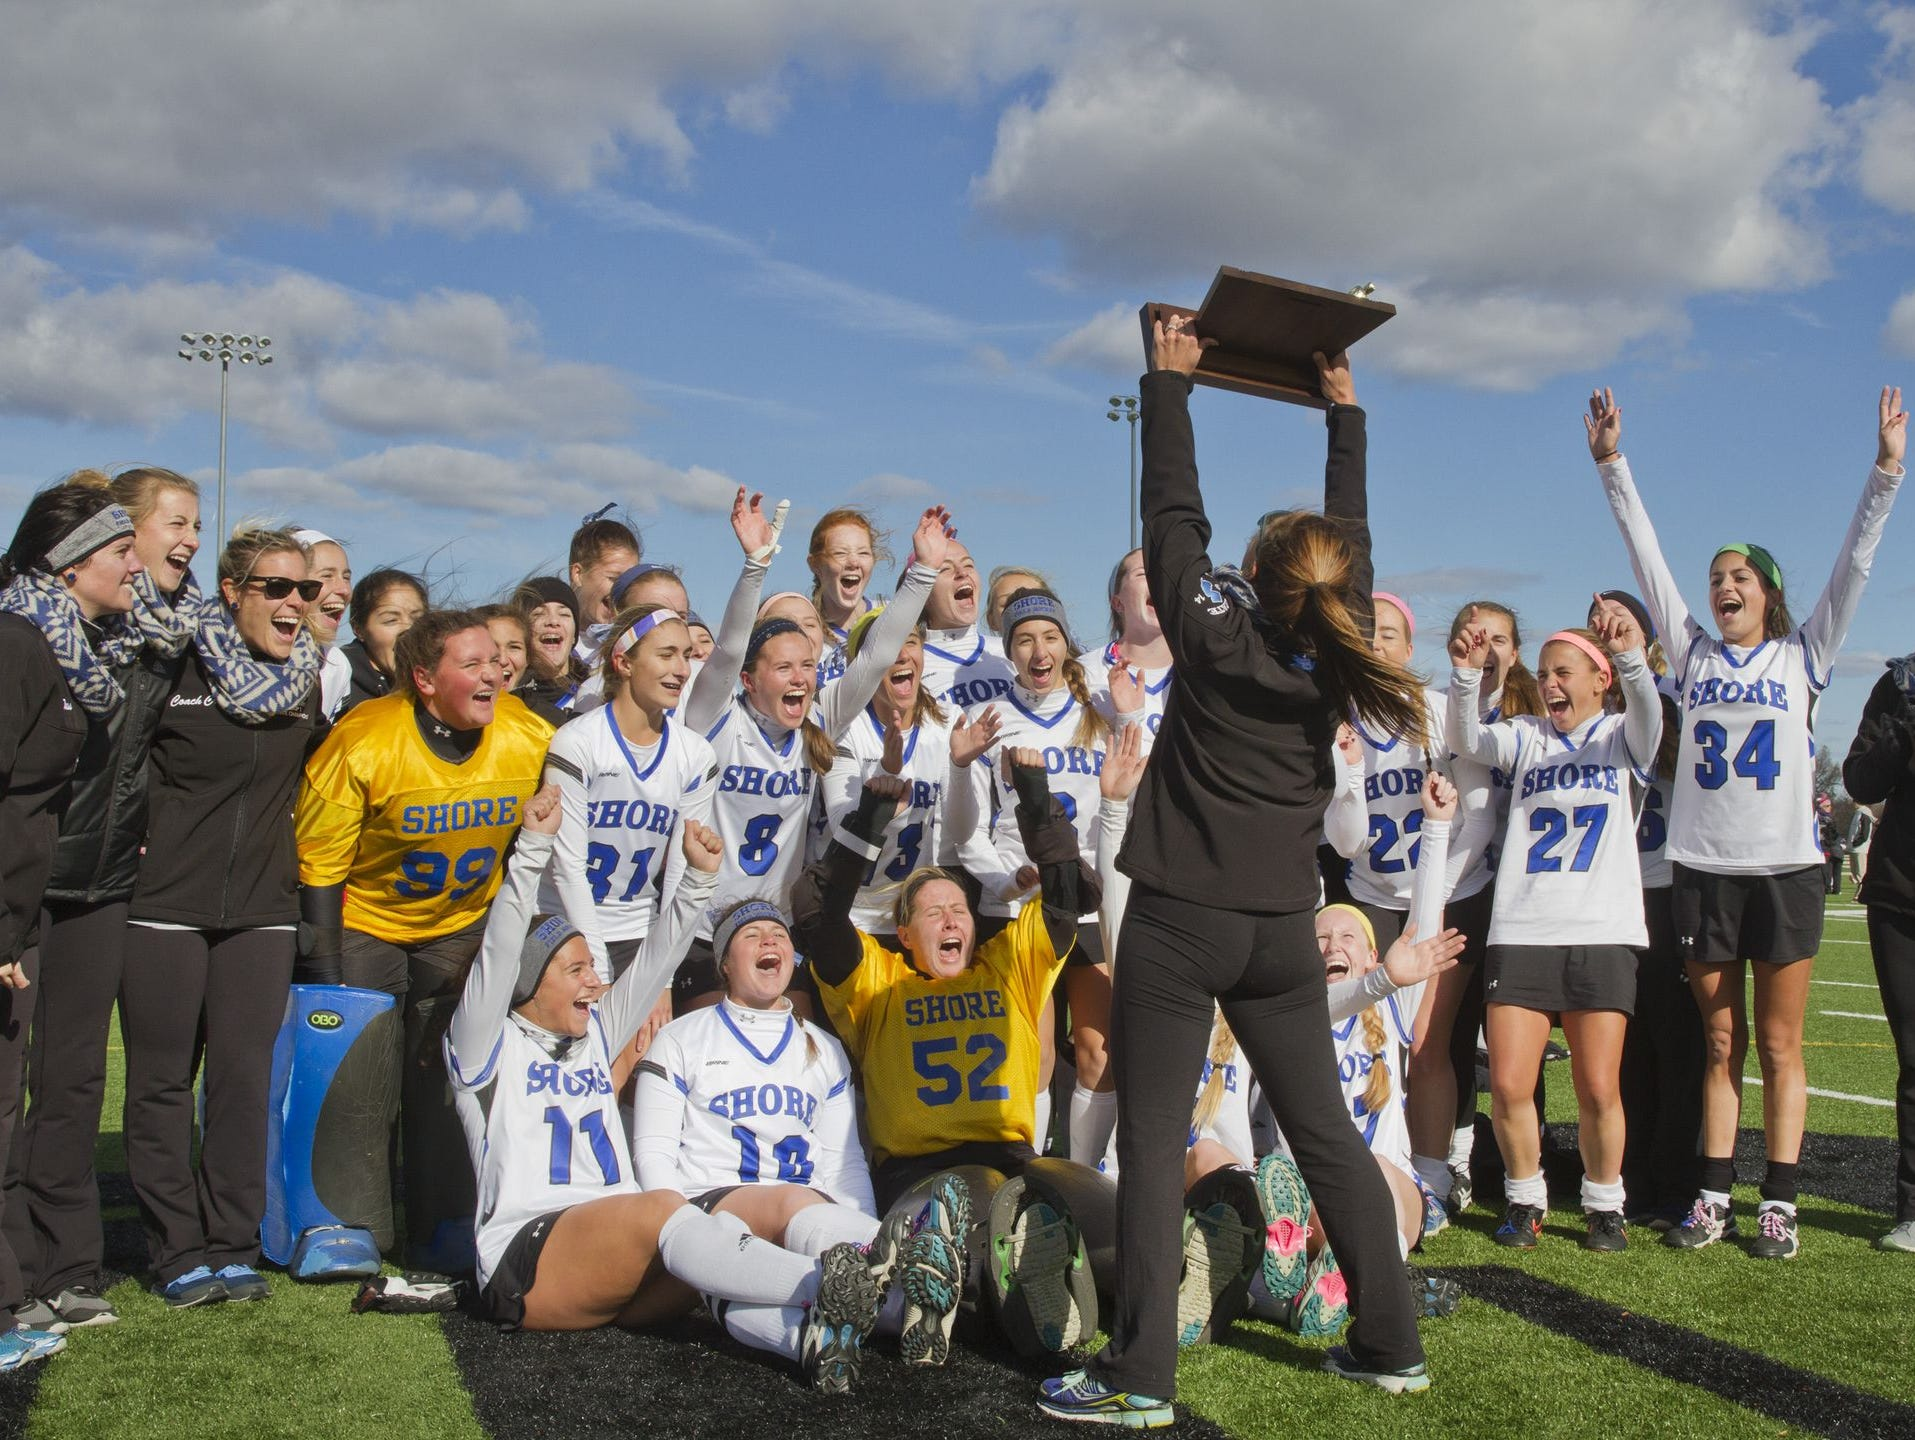 Shore Regional Kelly Koenig displays the NJSIAA Group 1 state title trophy in front of her team after Shore defeated Haddonfield, 3-0, on Nov. 14, 2015 at Bordentown Regional High School